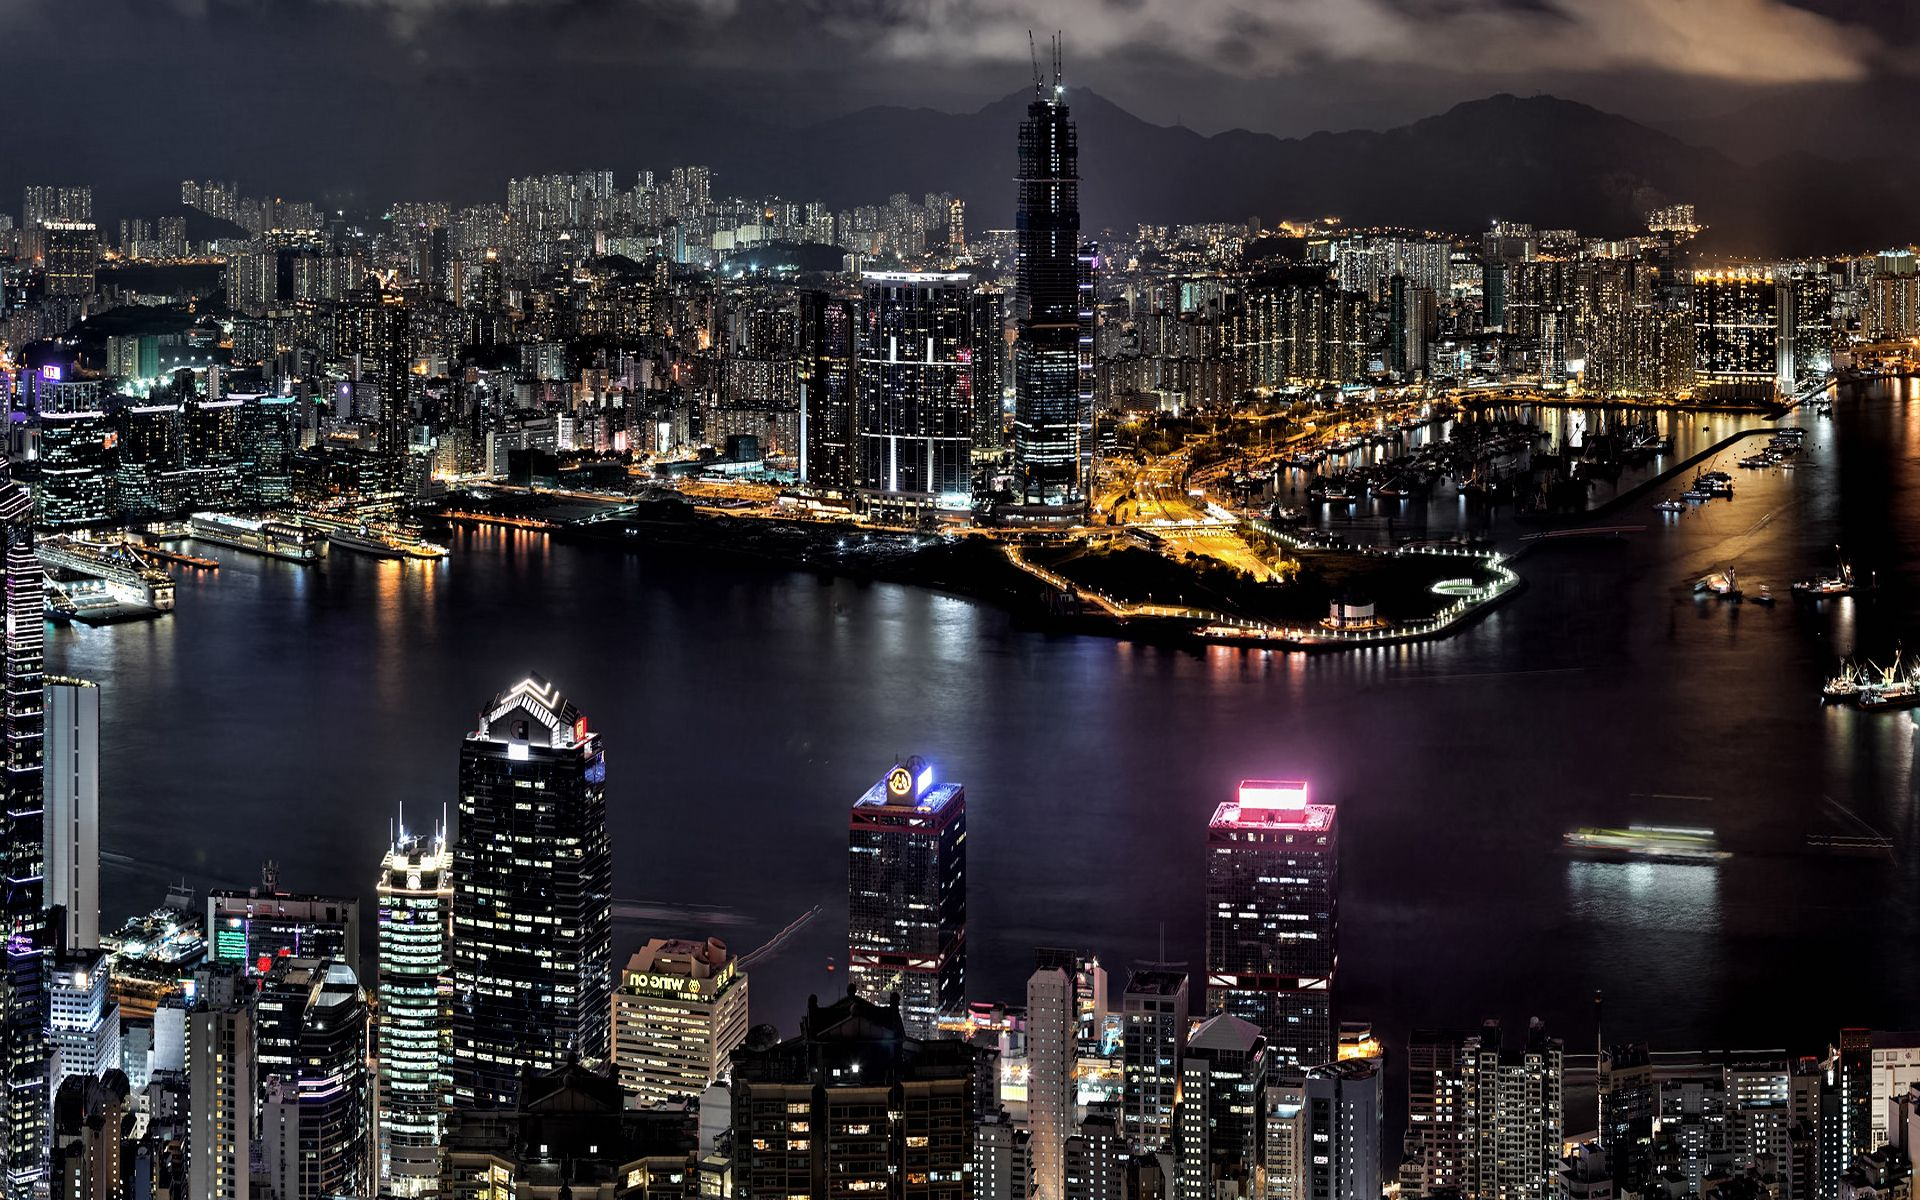 Aerial View Of Cities At Night Download City In The Night Aerial View Wallpaper Wallpaper Million Cityscape Wallpaper Night City Night Skyline